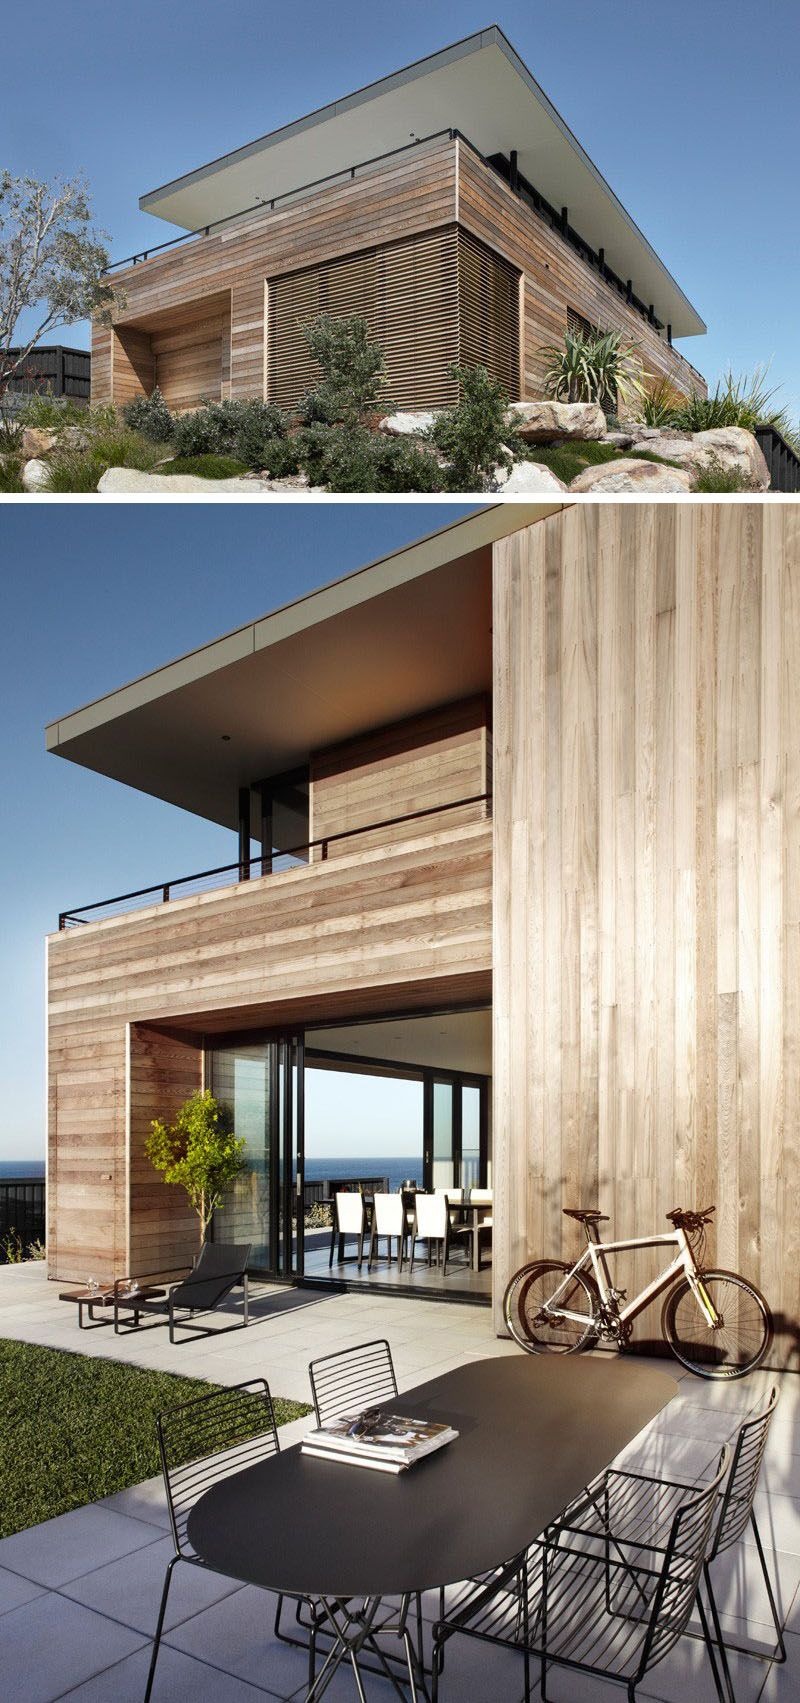 14 Examples Of Modern Beach Houses // Light Wood Paneling Covers The  Exterior Of The